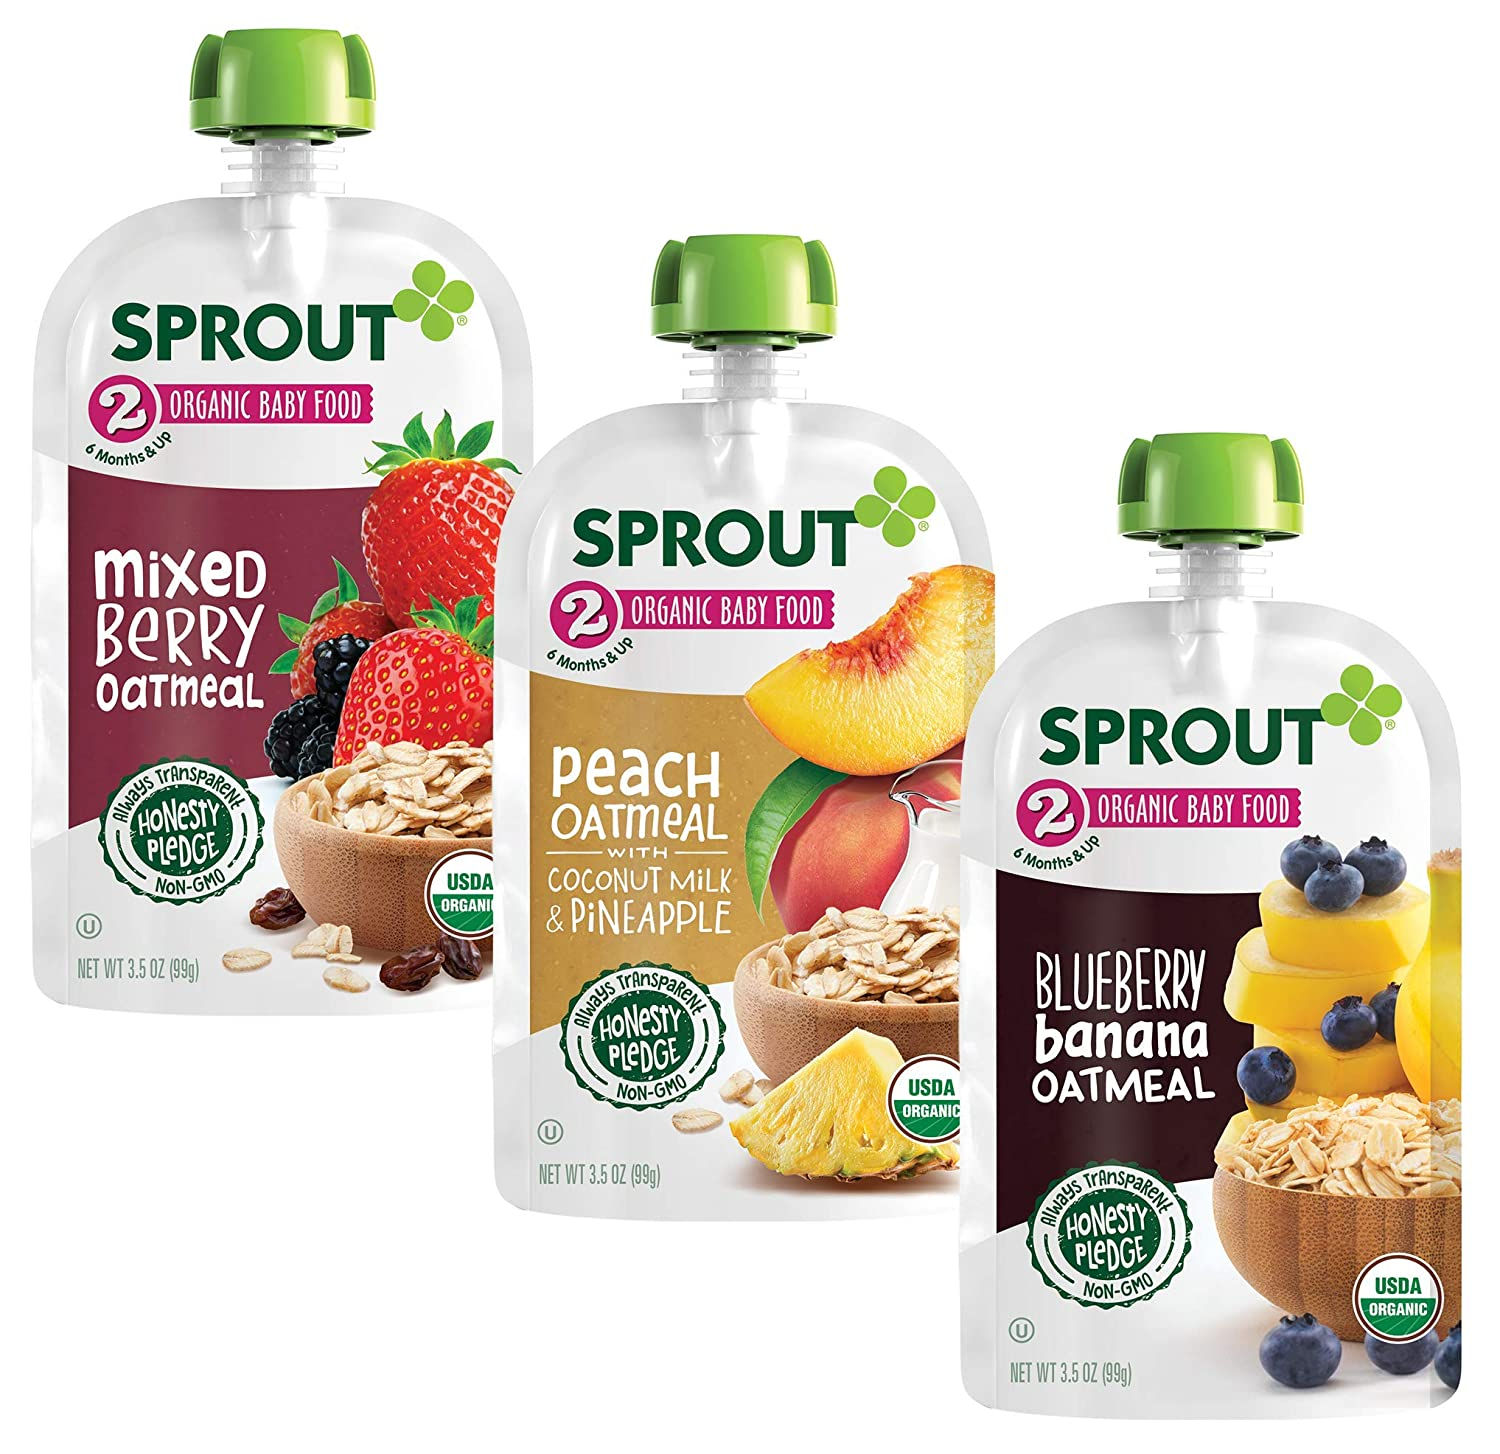 Sprout Organic Baby Food Pouches, Stage 2 Oatmeal Variety (Pack of 18); 6 (3.5 oz) Blueberry Banana oatmeal,6 (3.5 oz) Mixed Berry Oatmeal, 6 (3.5 oz) Peach Oatmeal with Coconut Milk & Pineapple